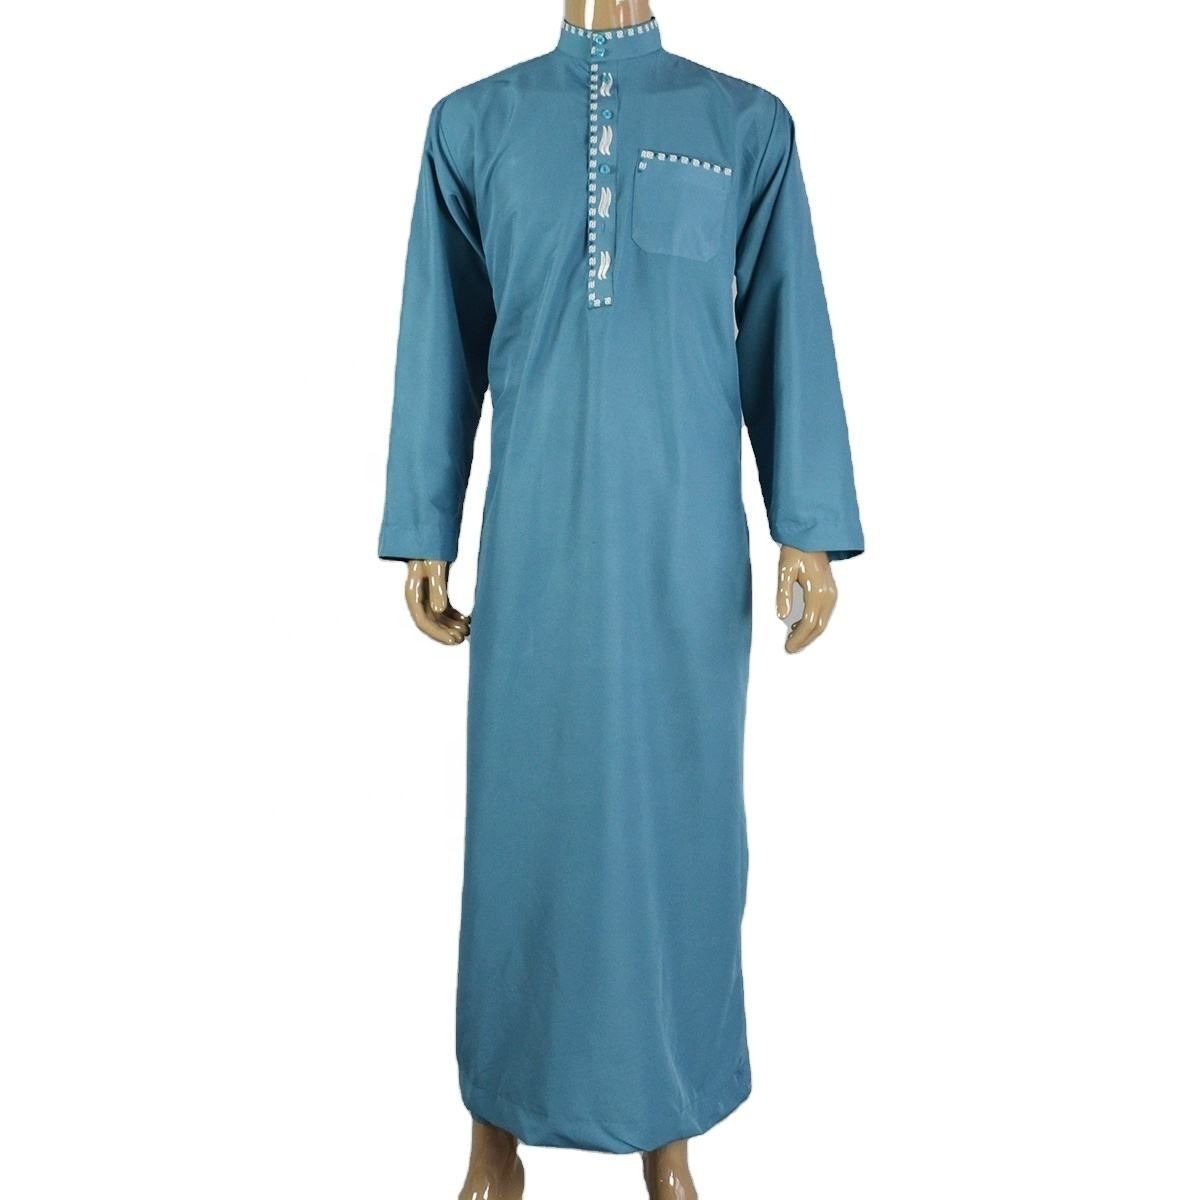 high quality Islamic clothing men/thobe/jubbah/abaya for men